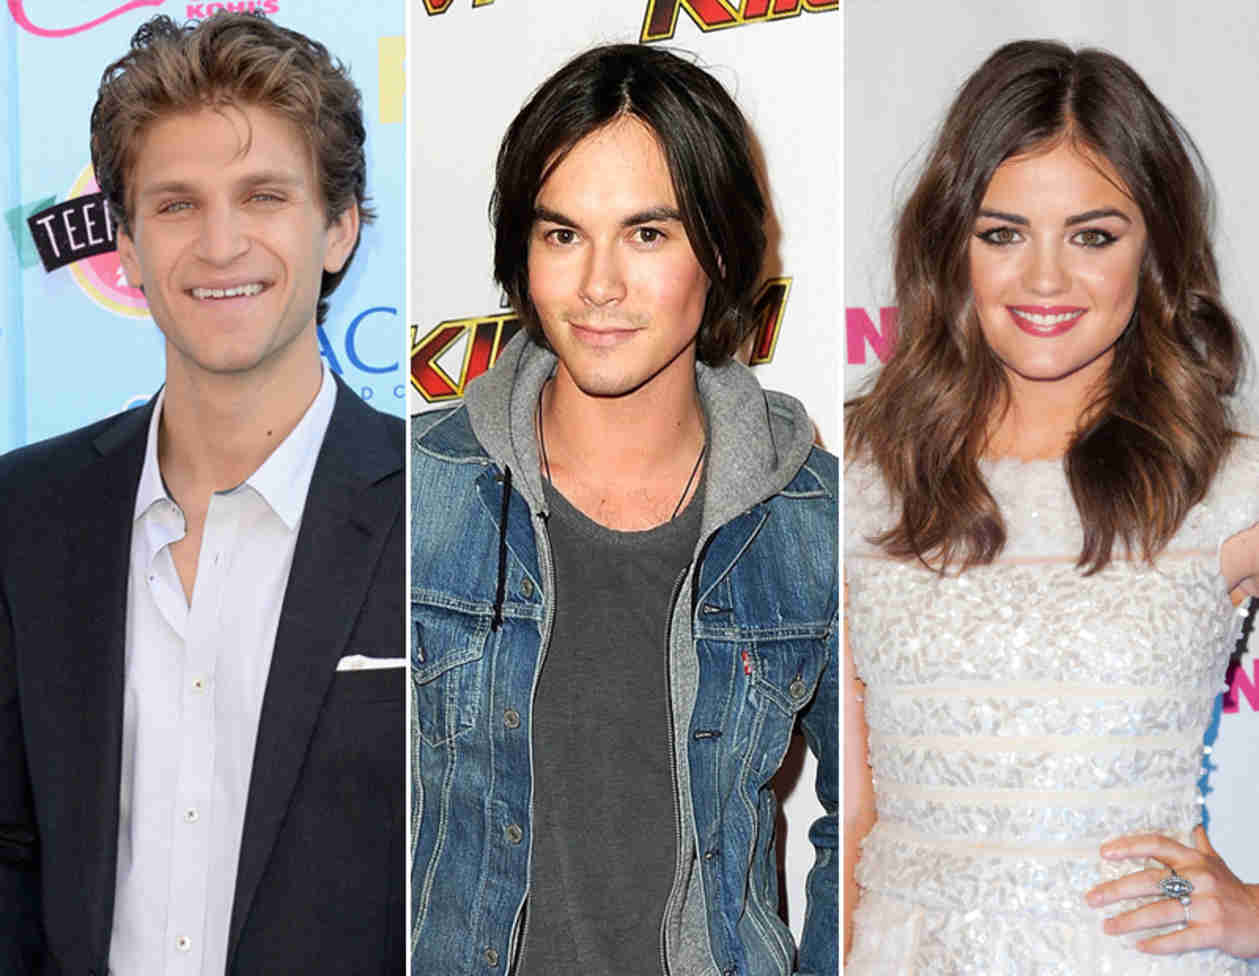 Which Pretty Little Liars Star Is Releasing a Single Next?